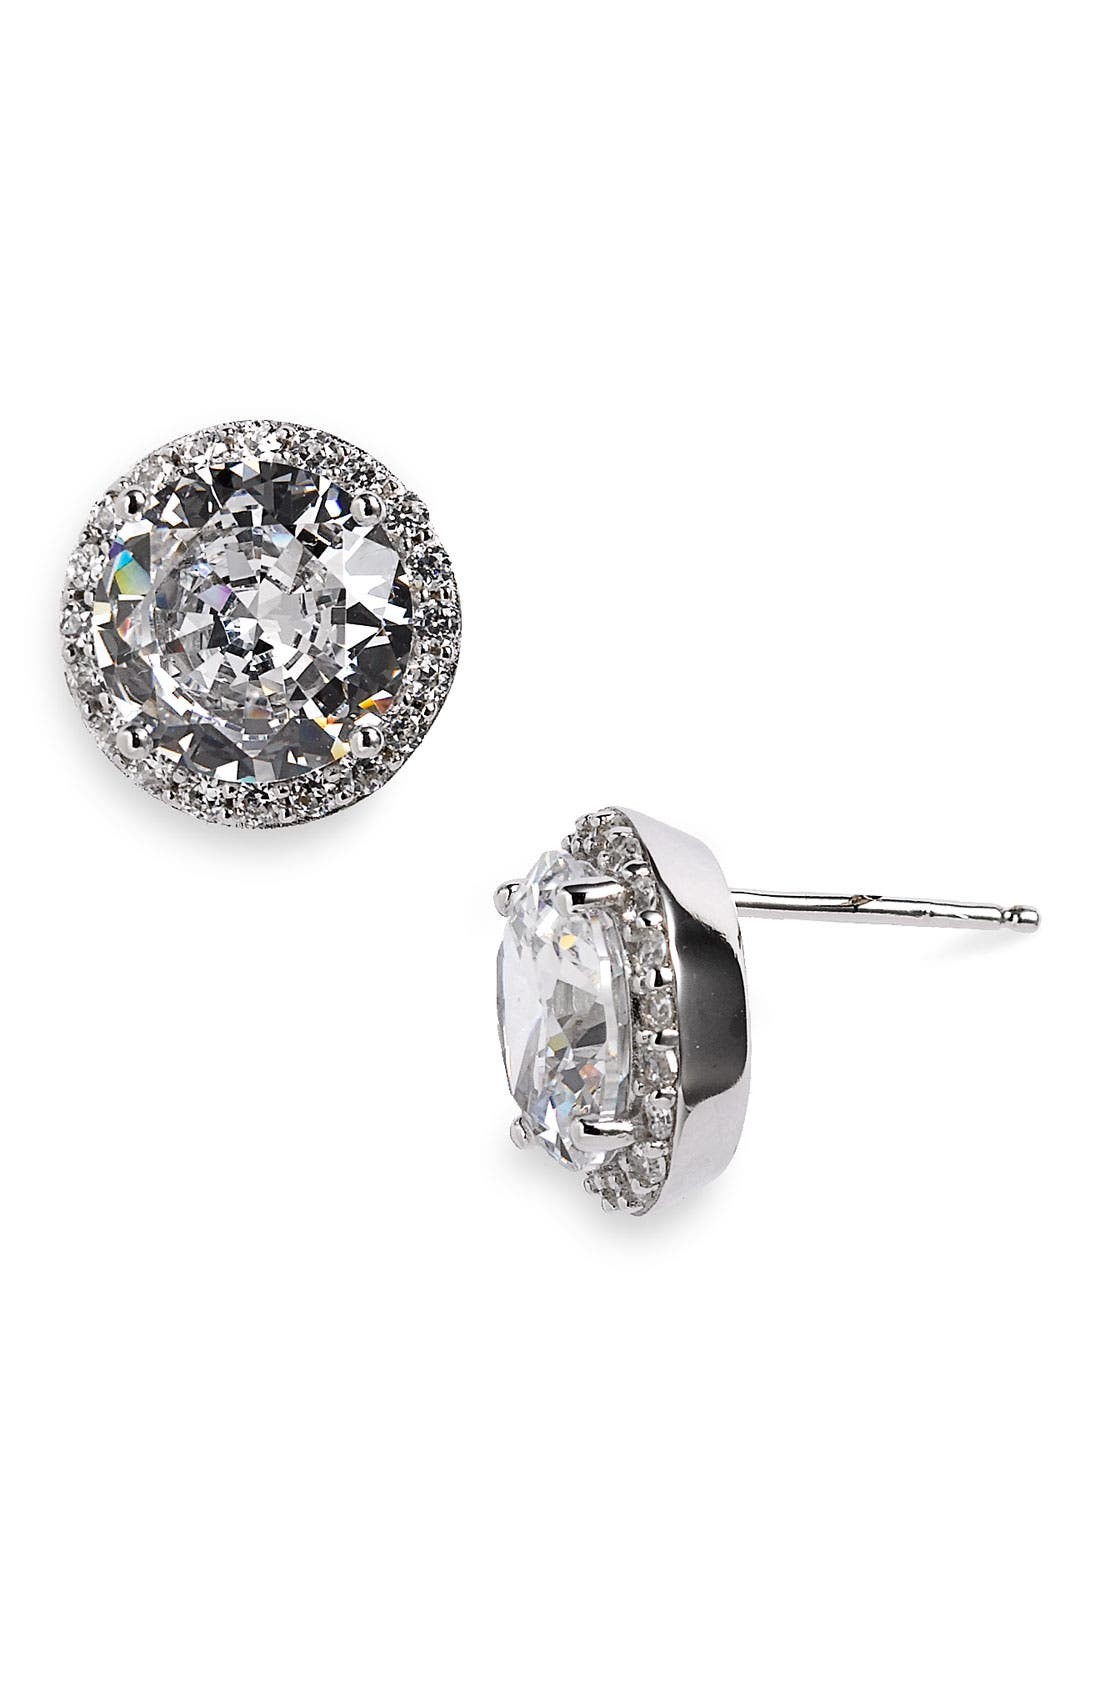 Main Image - Nordstrom Round Pavé Stone Stud Earrings